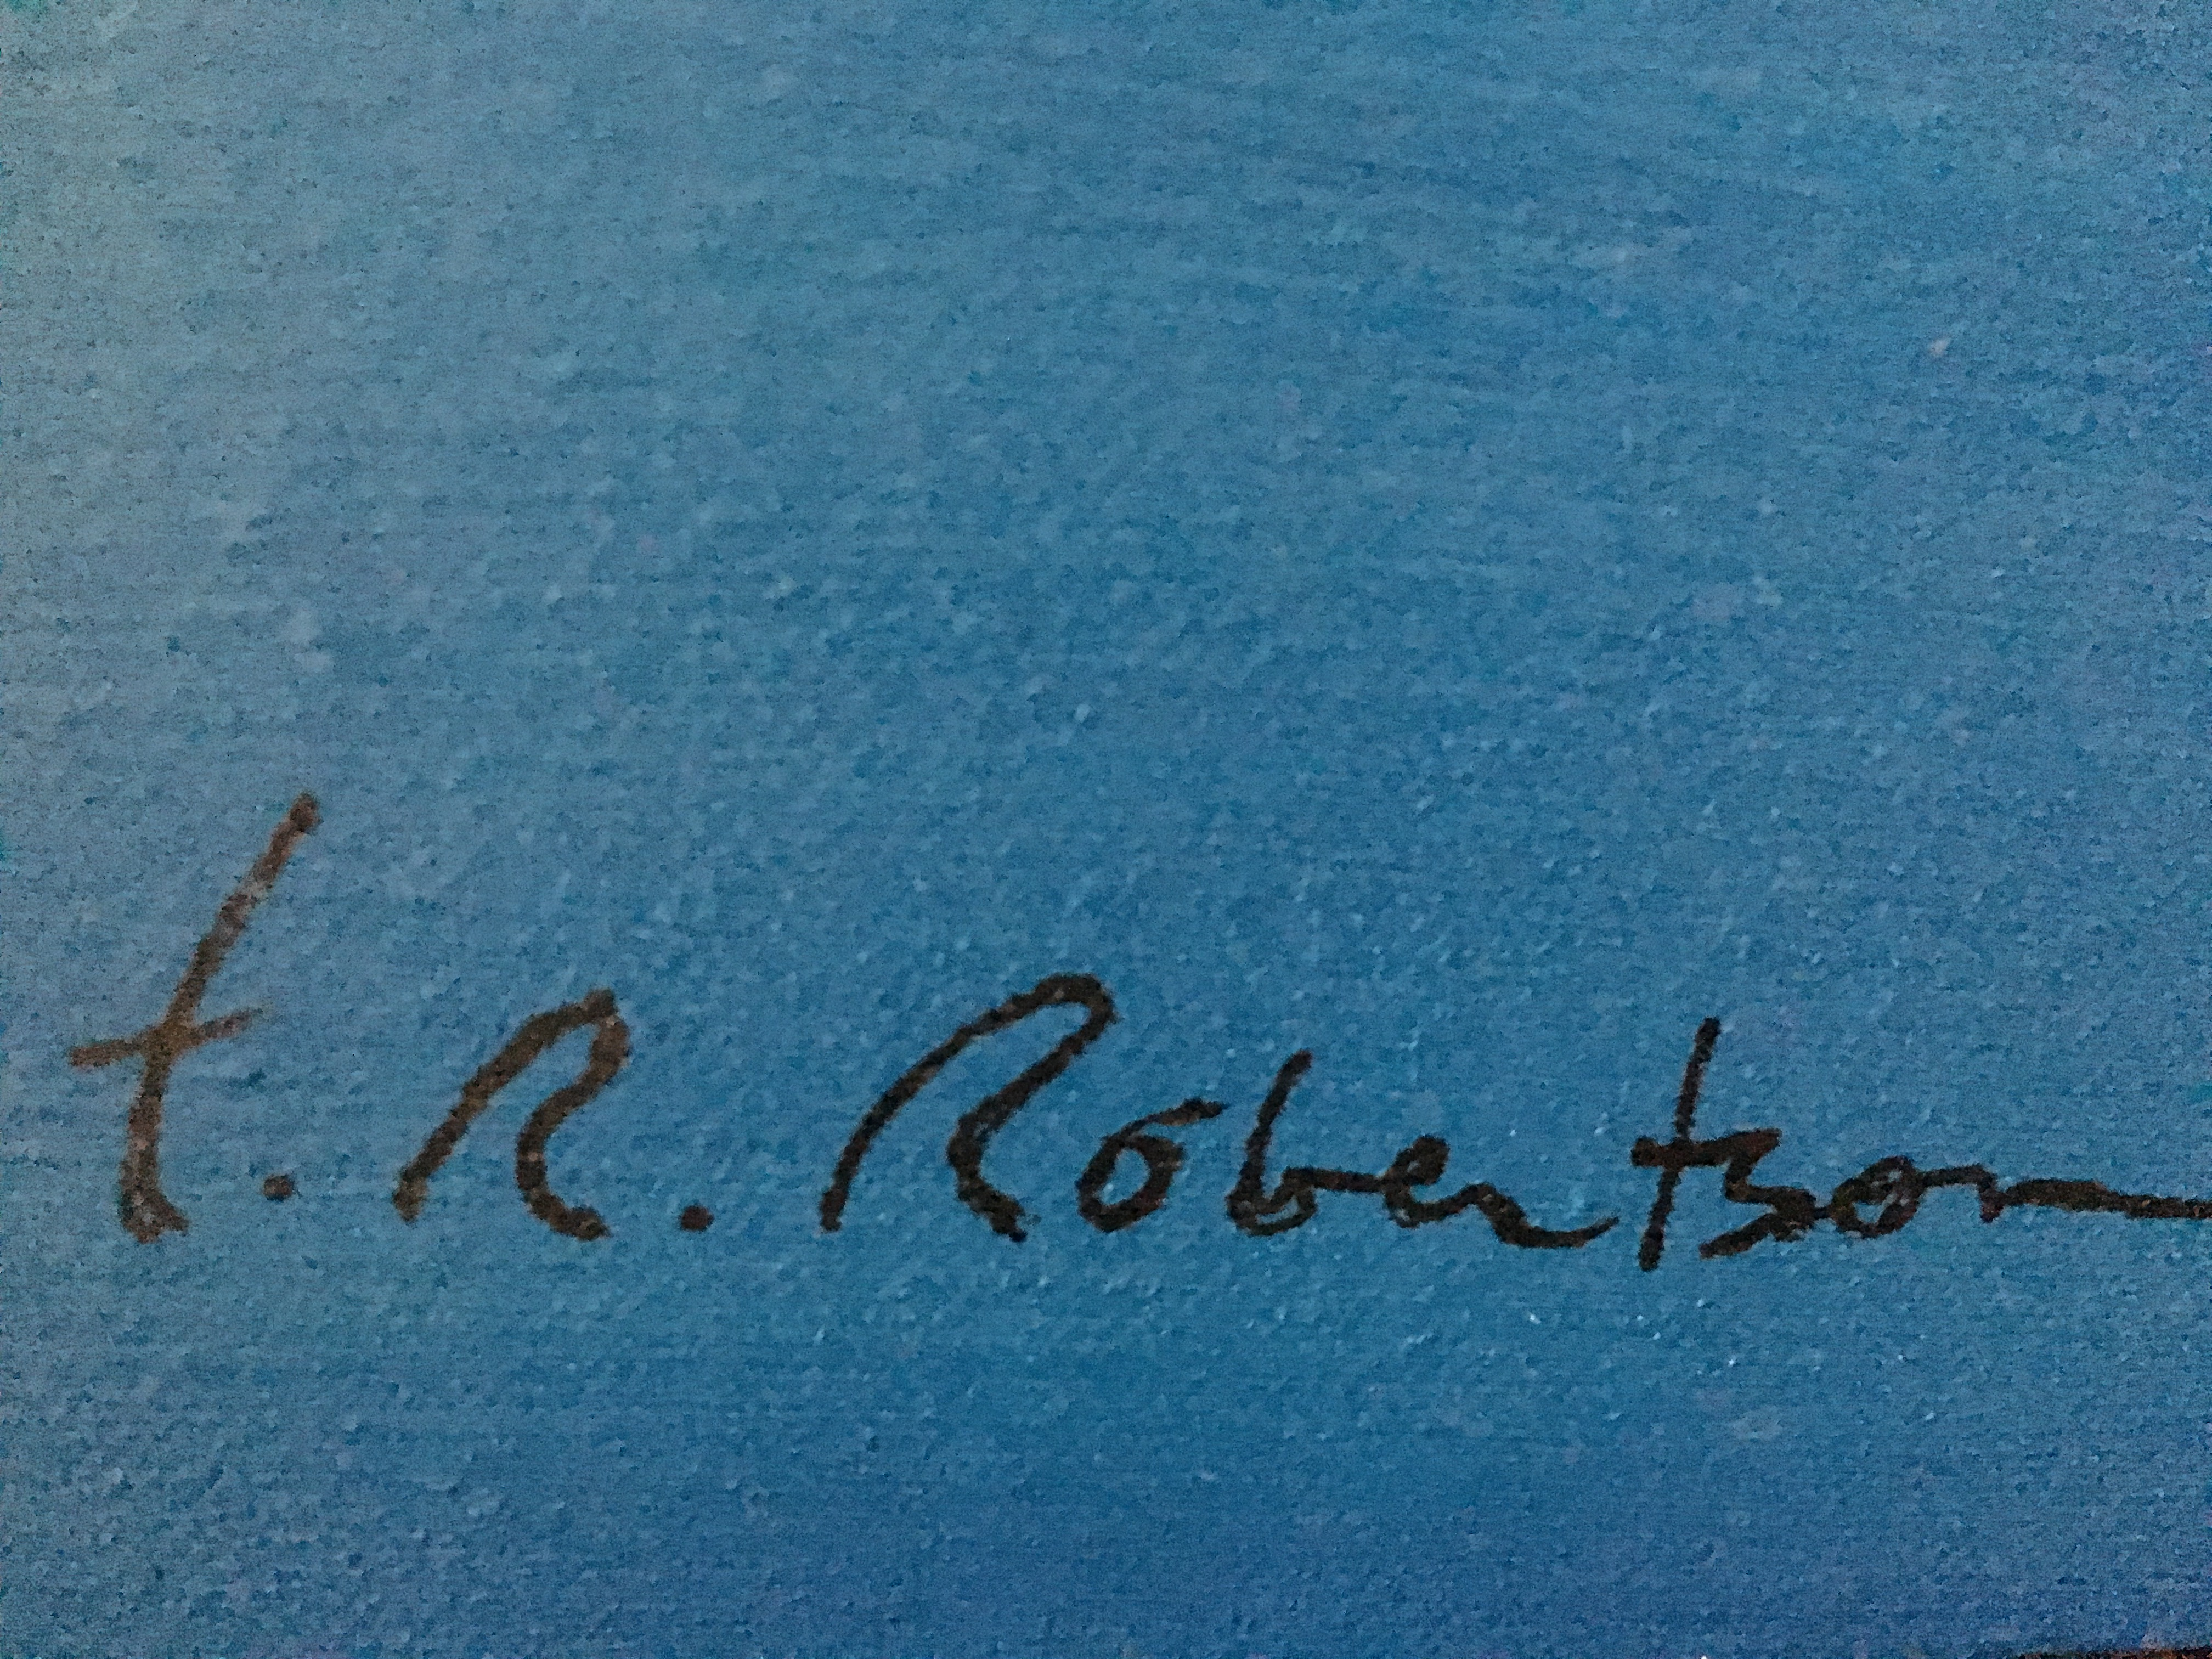 T. R. Robertson's Signature